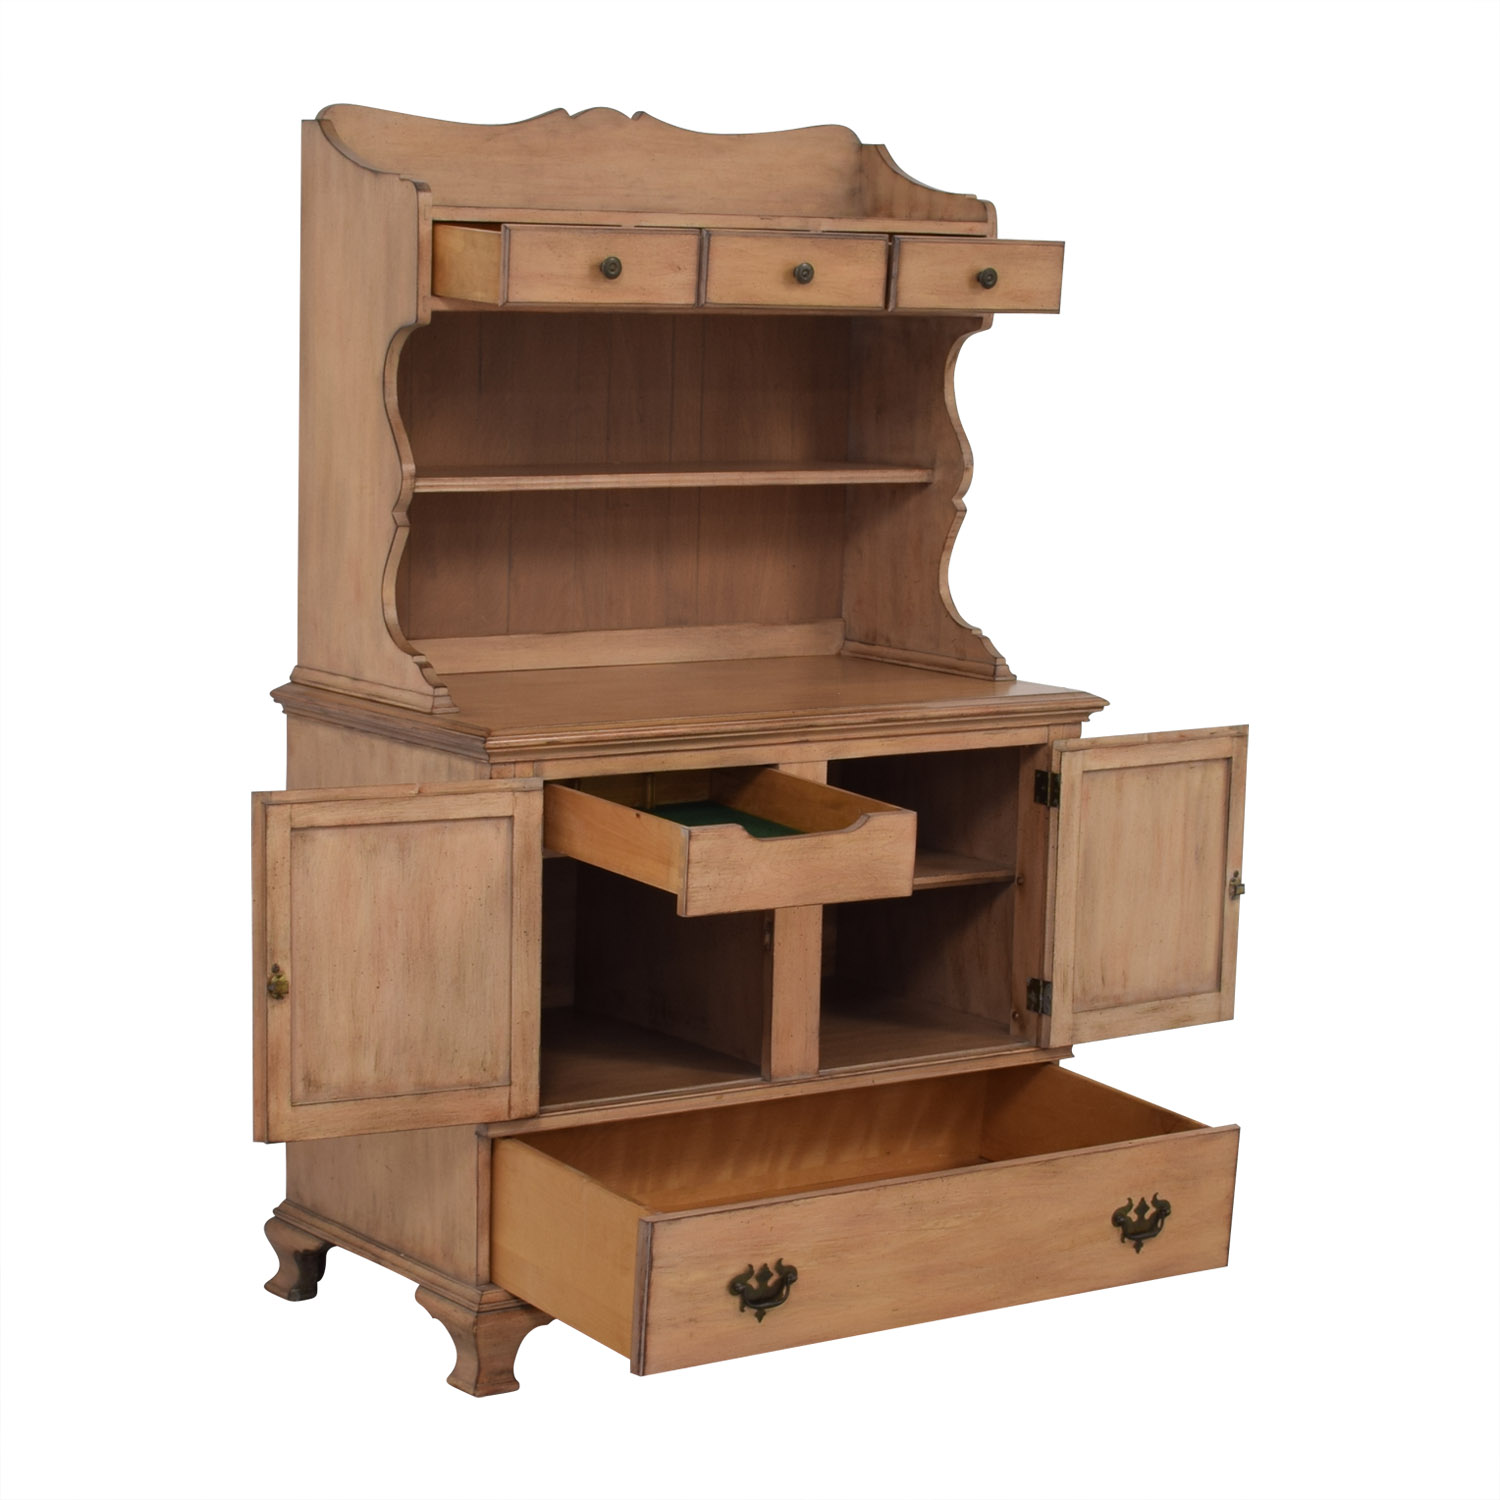 Maine Built Hutch for sale